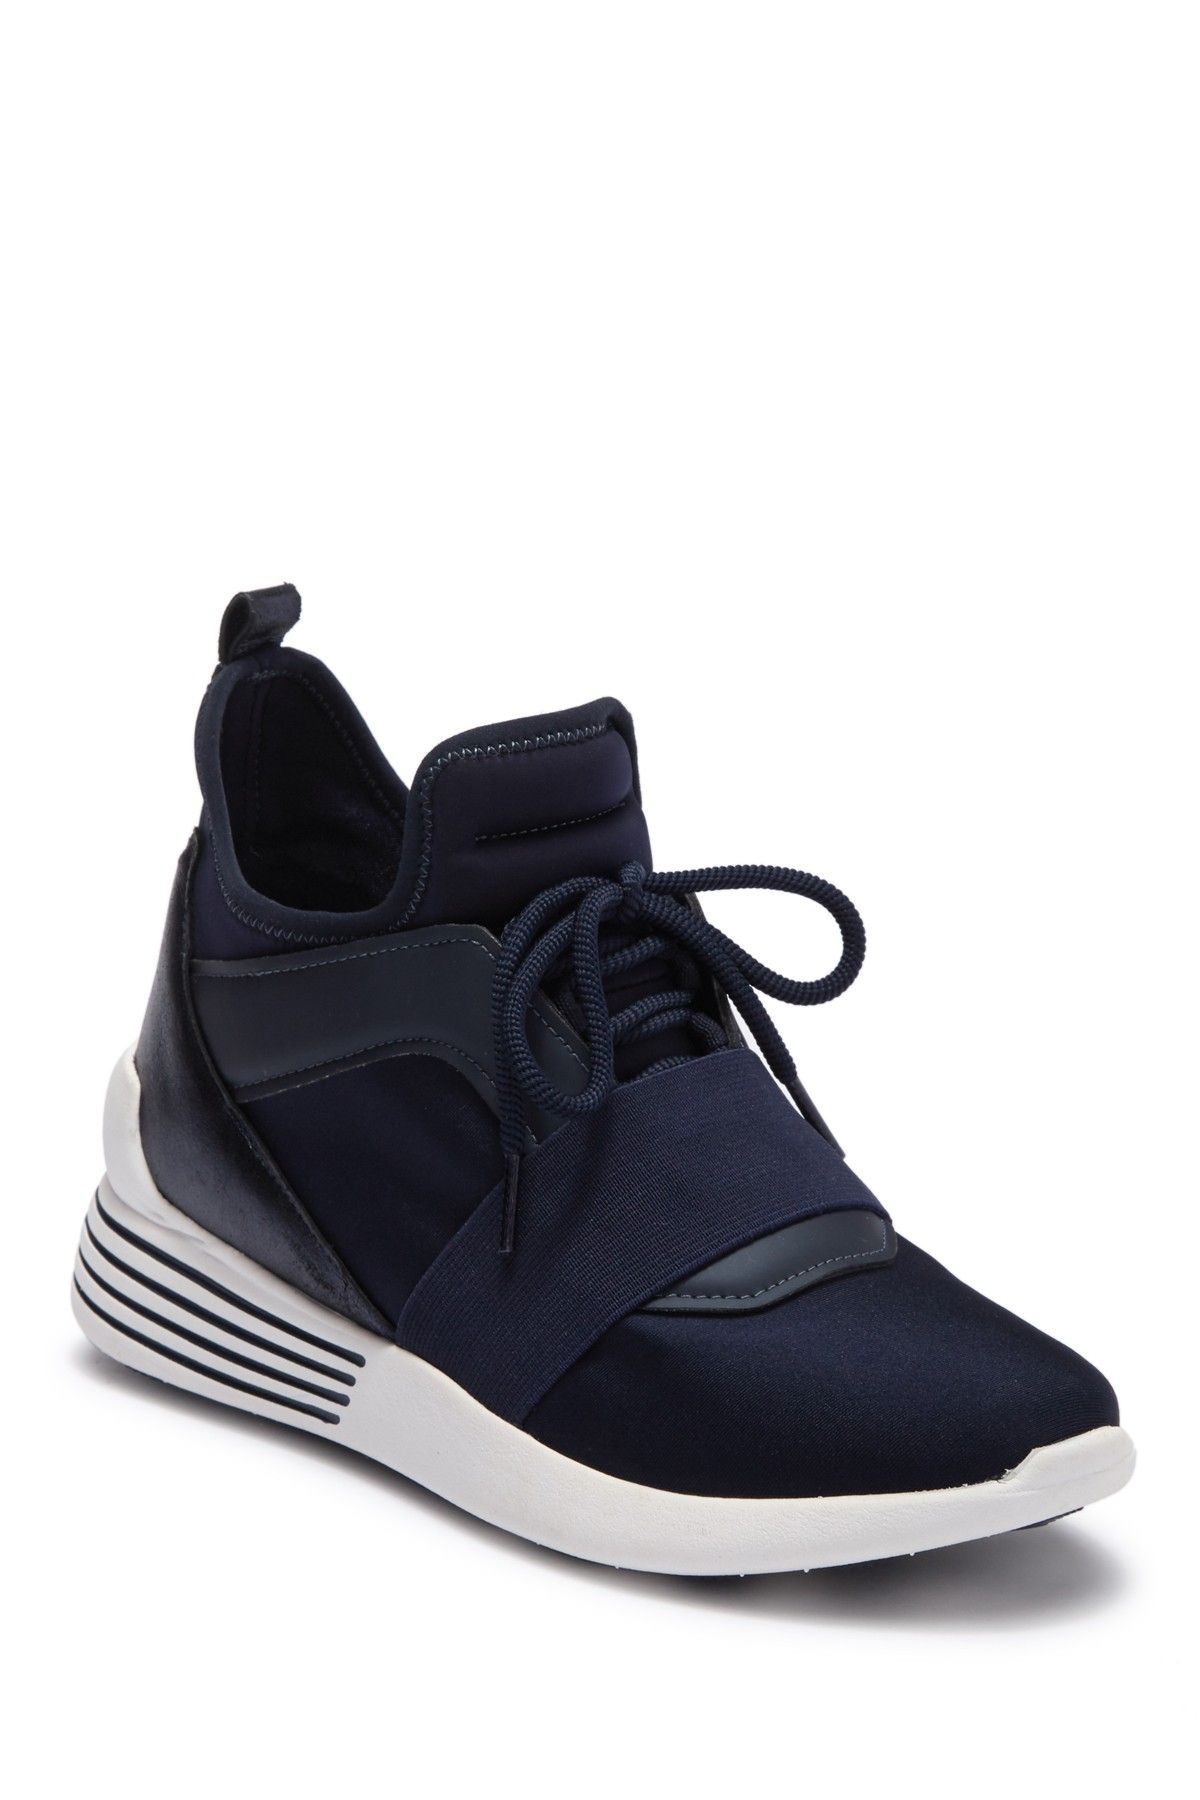 a0c295f0532 Braydin High Top Sneaker by Kendall   Kylie on  nordstrom rack Motivational  Quotes For Women